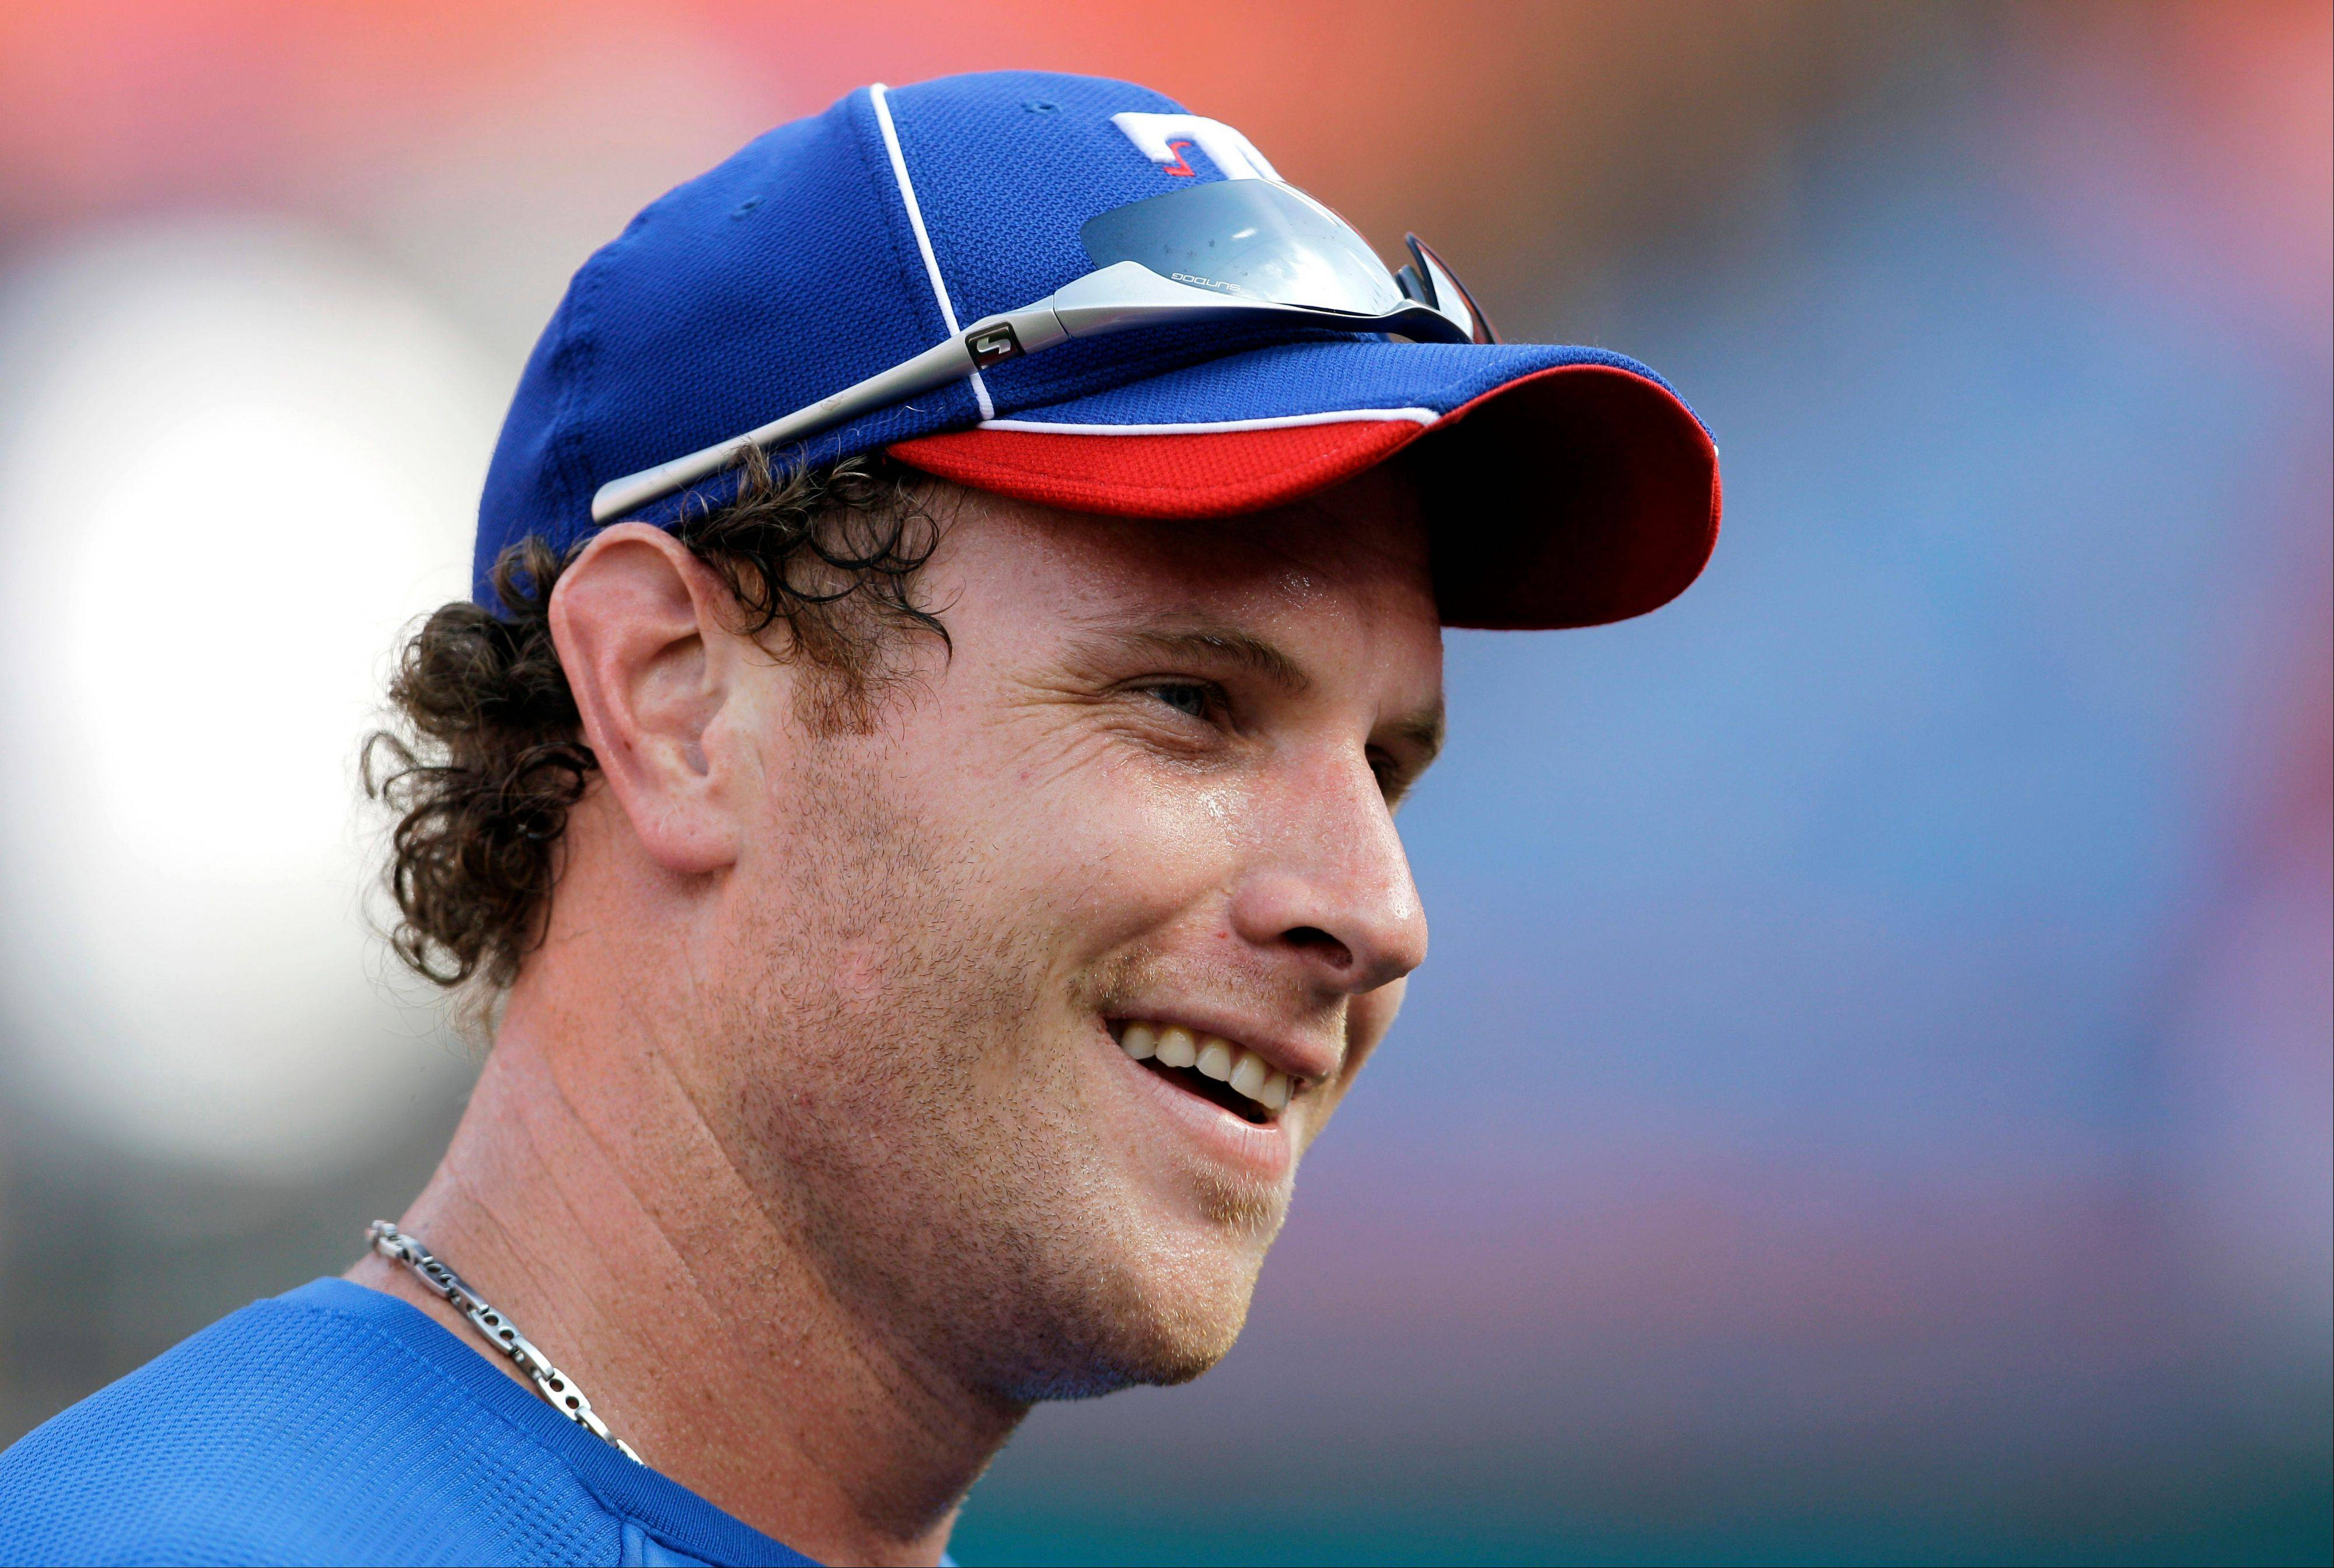 With the Angels signing Josh Hamilton to go along with likes of Albert Pujols and Mike Trout, the power in baseball is shifting to California.